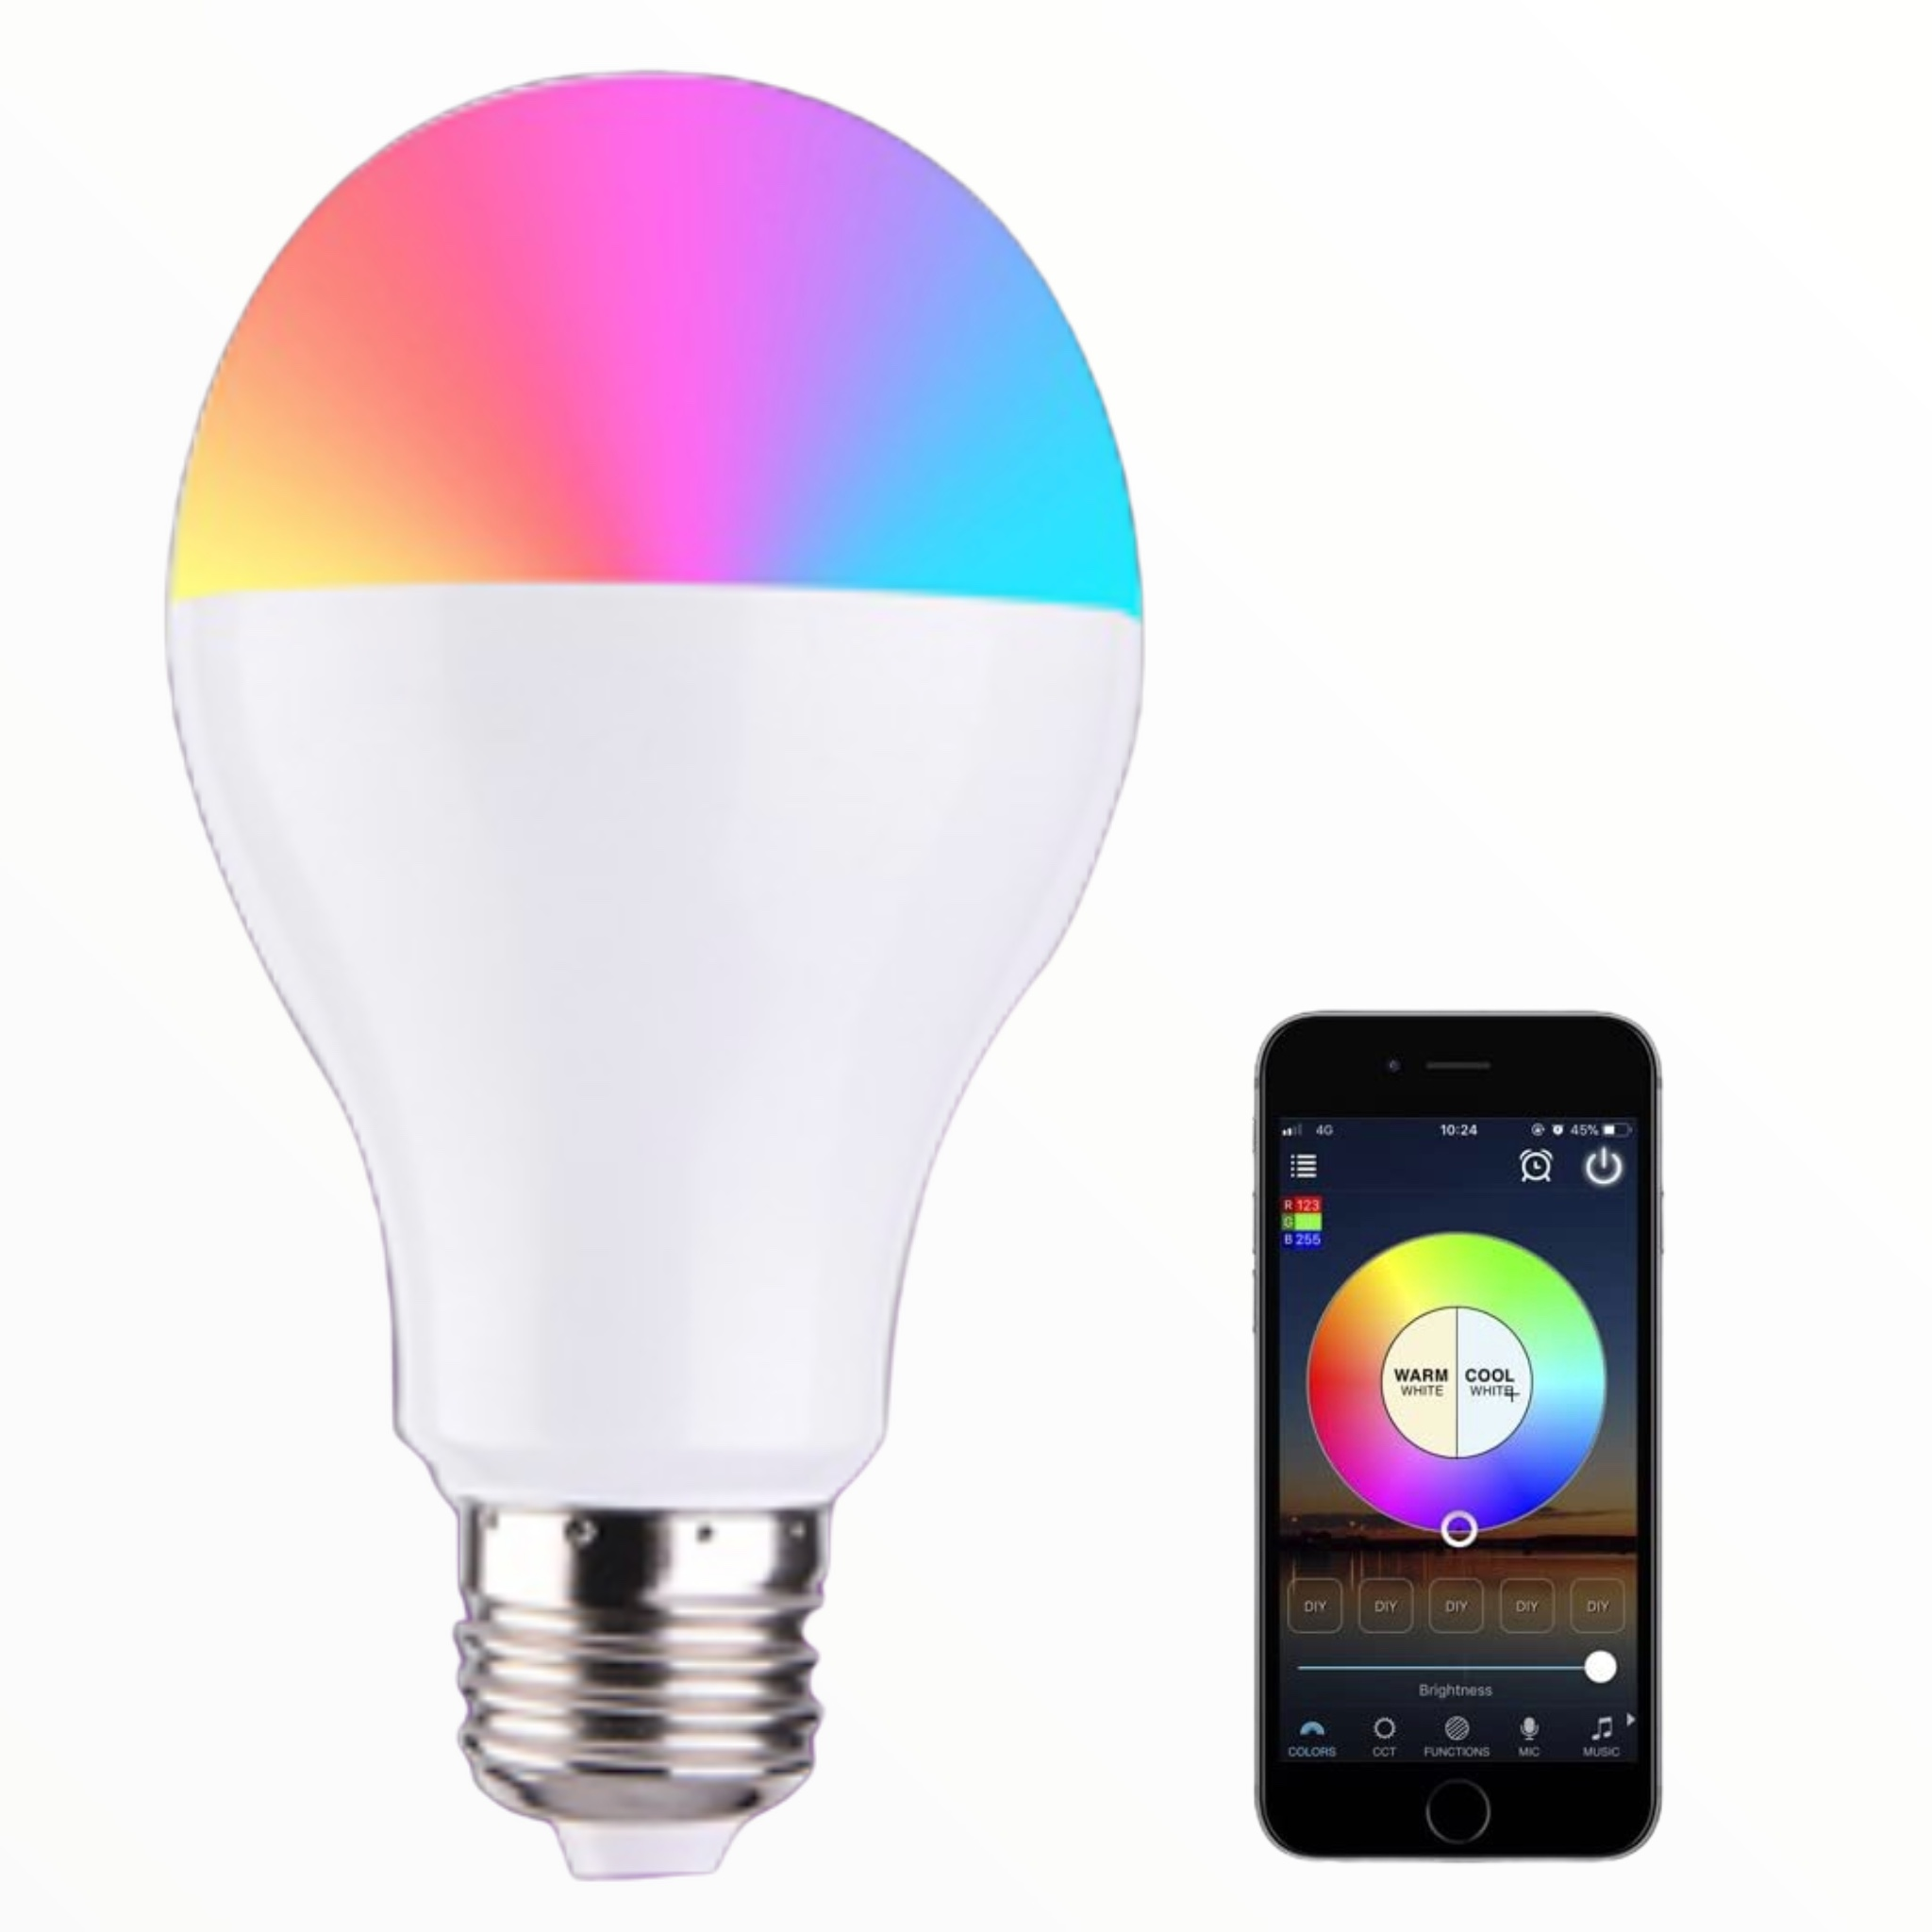 Smart WiFi Enabled LED Dimmable Color Changing Light Bulb - Control with your phone! Set a timer, sync it to music, select the exact color or brightness! Yup, this is awesome! - $1.49 shipping, but order 2 or more and SHIPPING IS FREE!